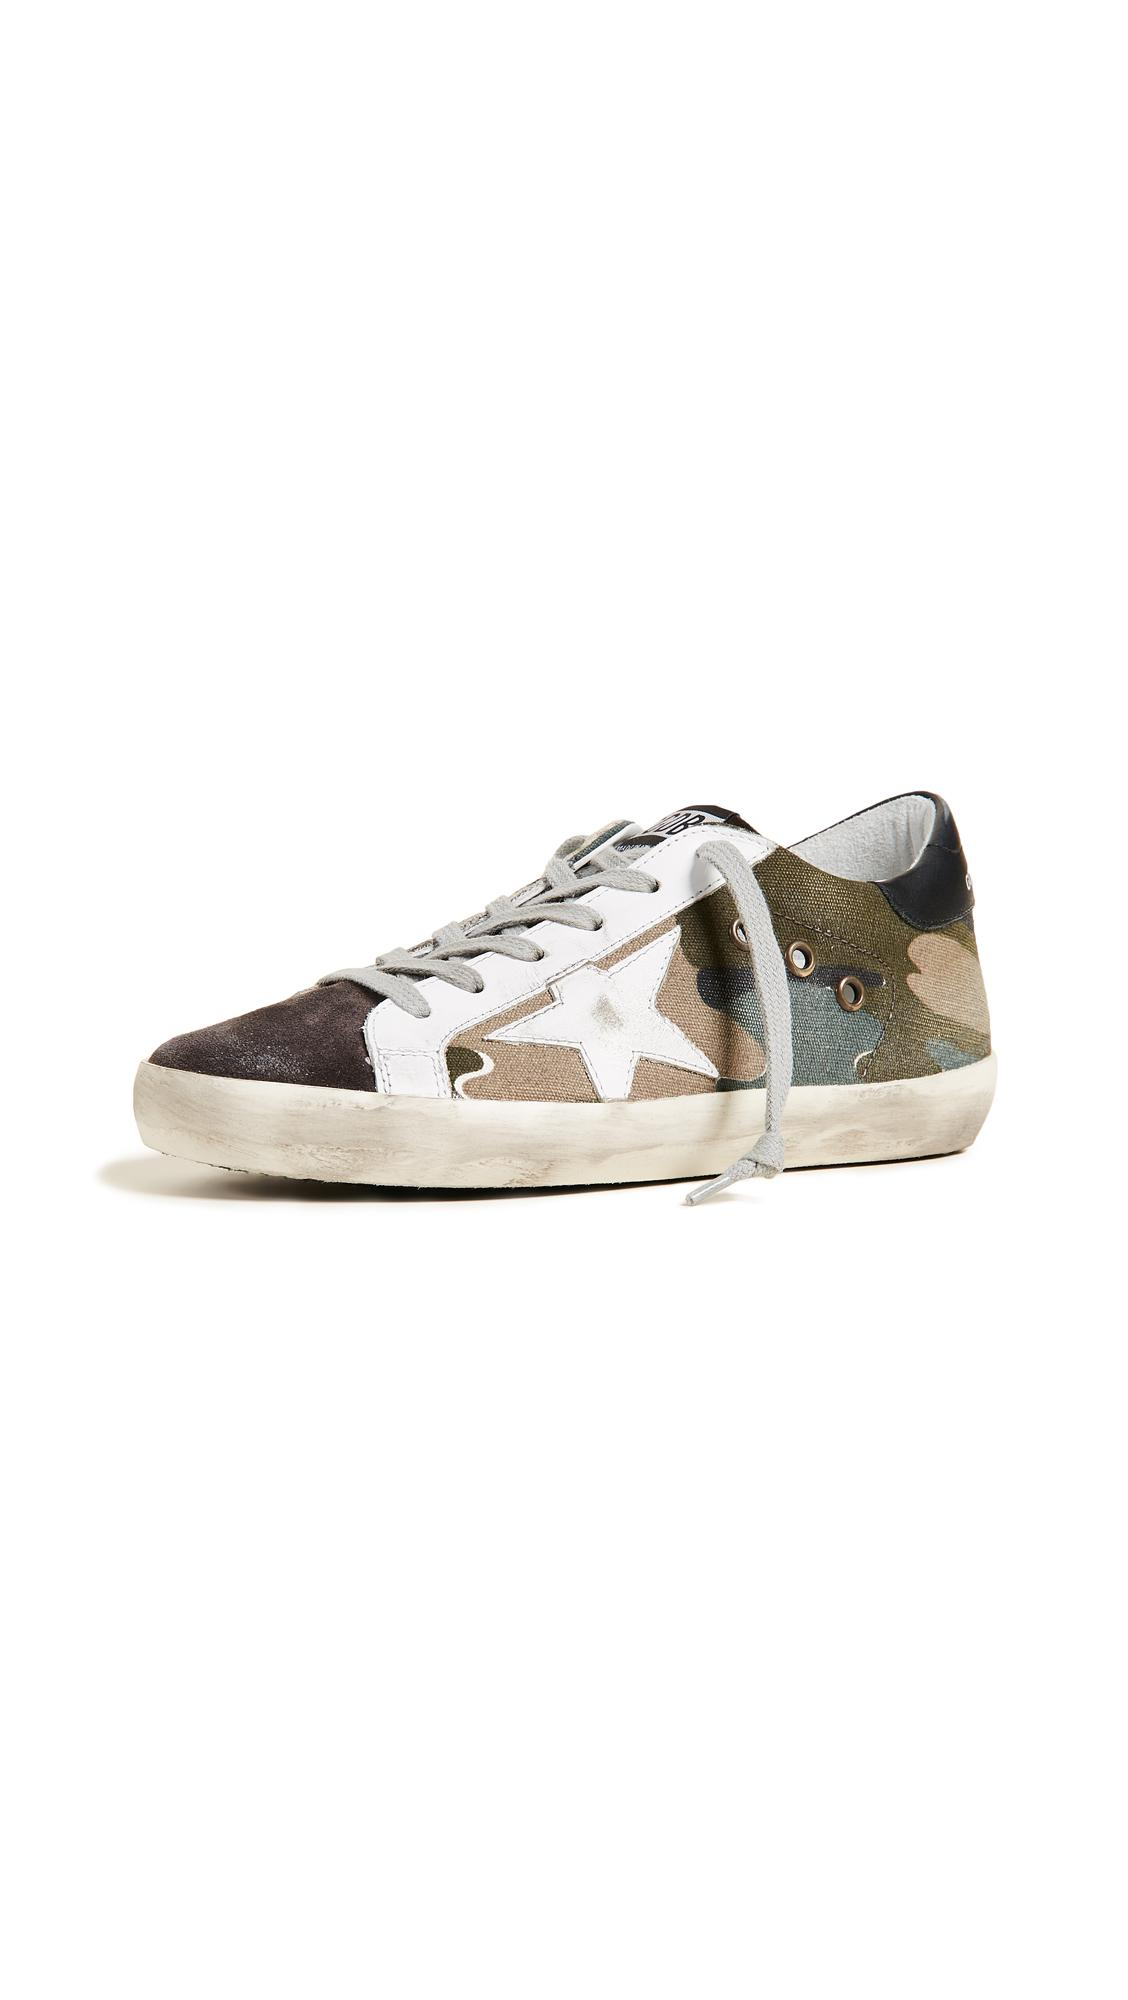 Golden Goose Deluxe Brand Goose Superstar Sneakers in Grey